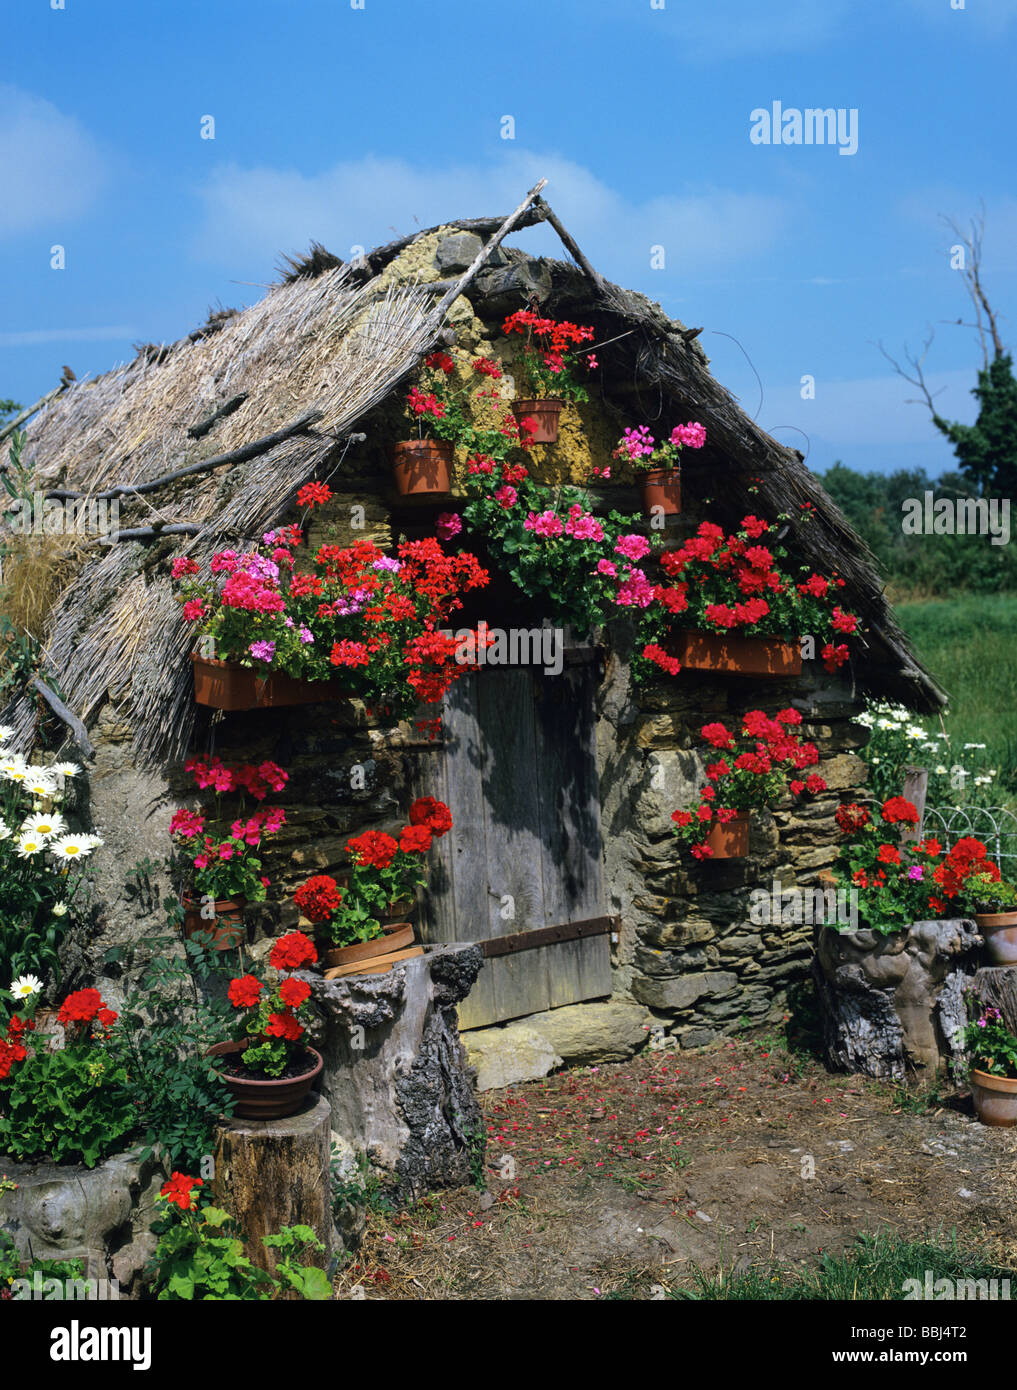 Flower Covered Garden Shed In Rural Brittany